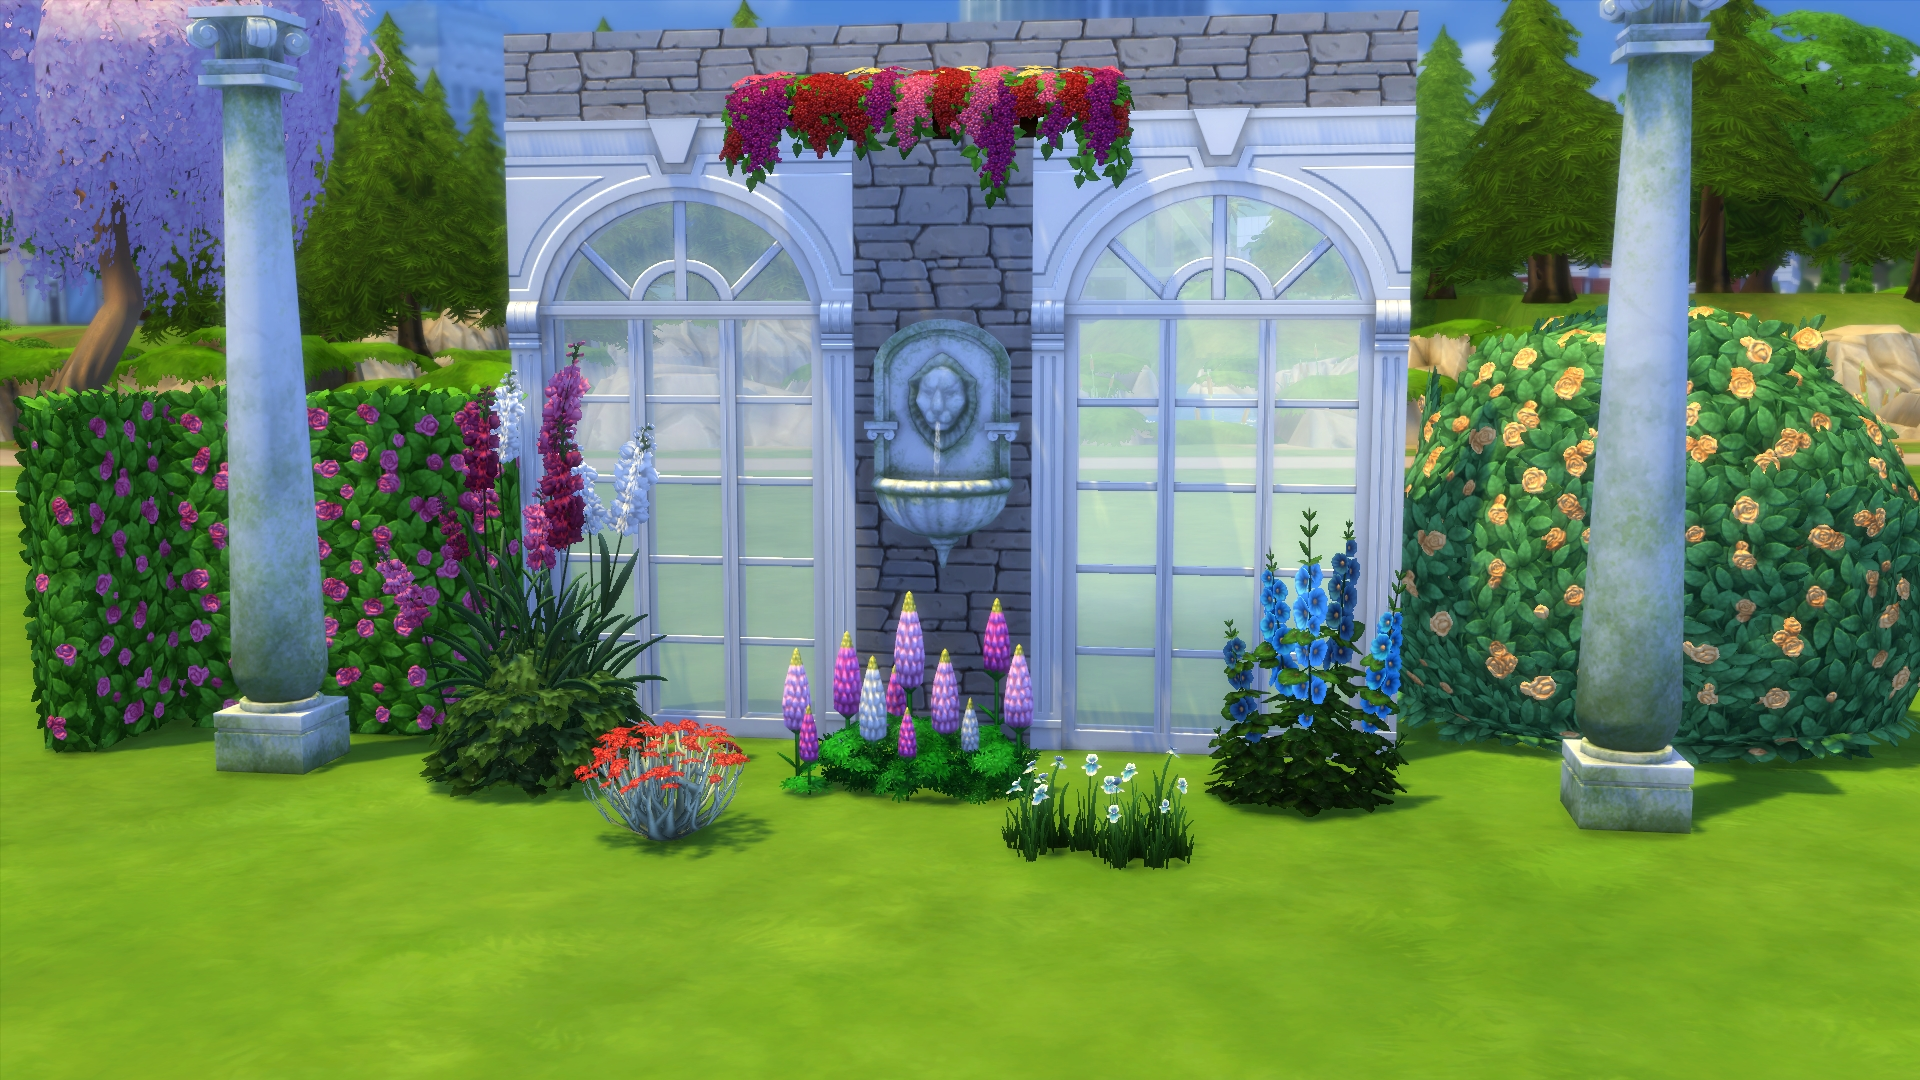 The sims 4 movie hangout stuff pack review for Indoor gardening sims 4